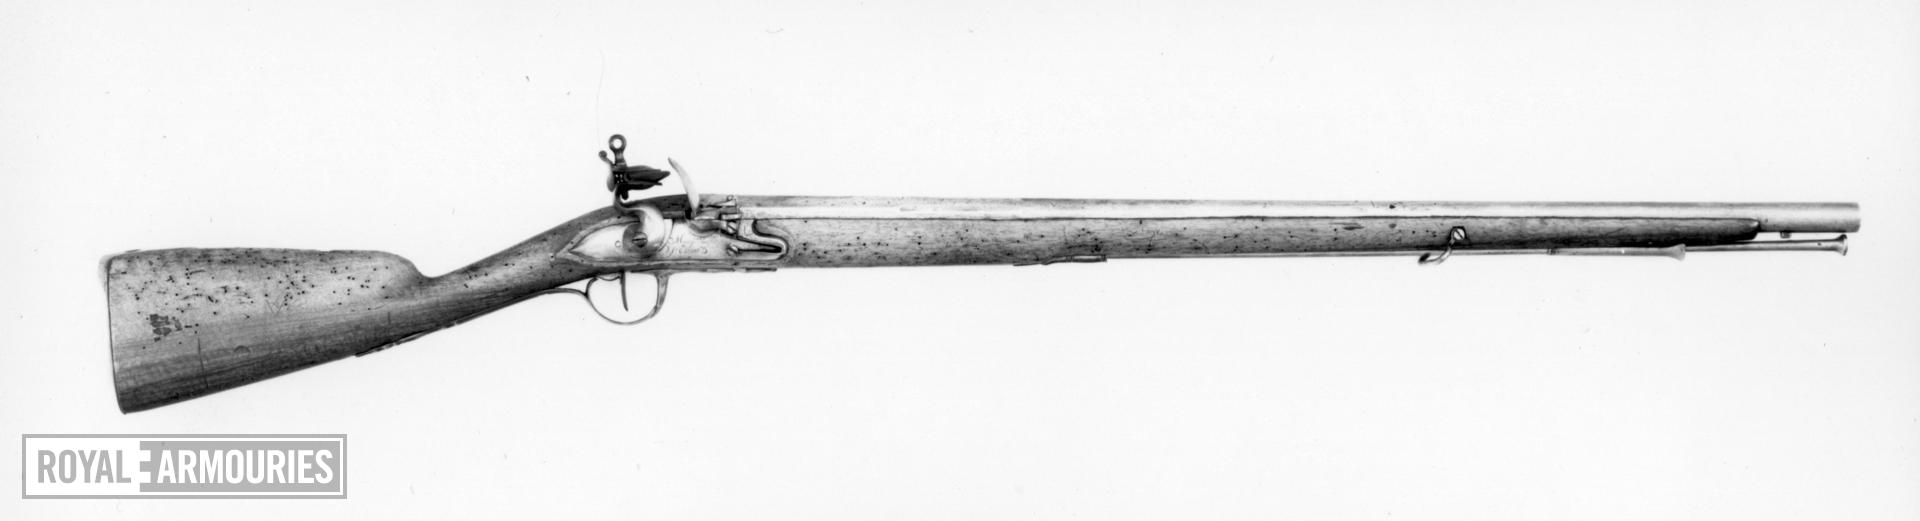 Flintlock military carbine This probably the carbine (Mousqeton) of the Maison du Roi